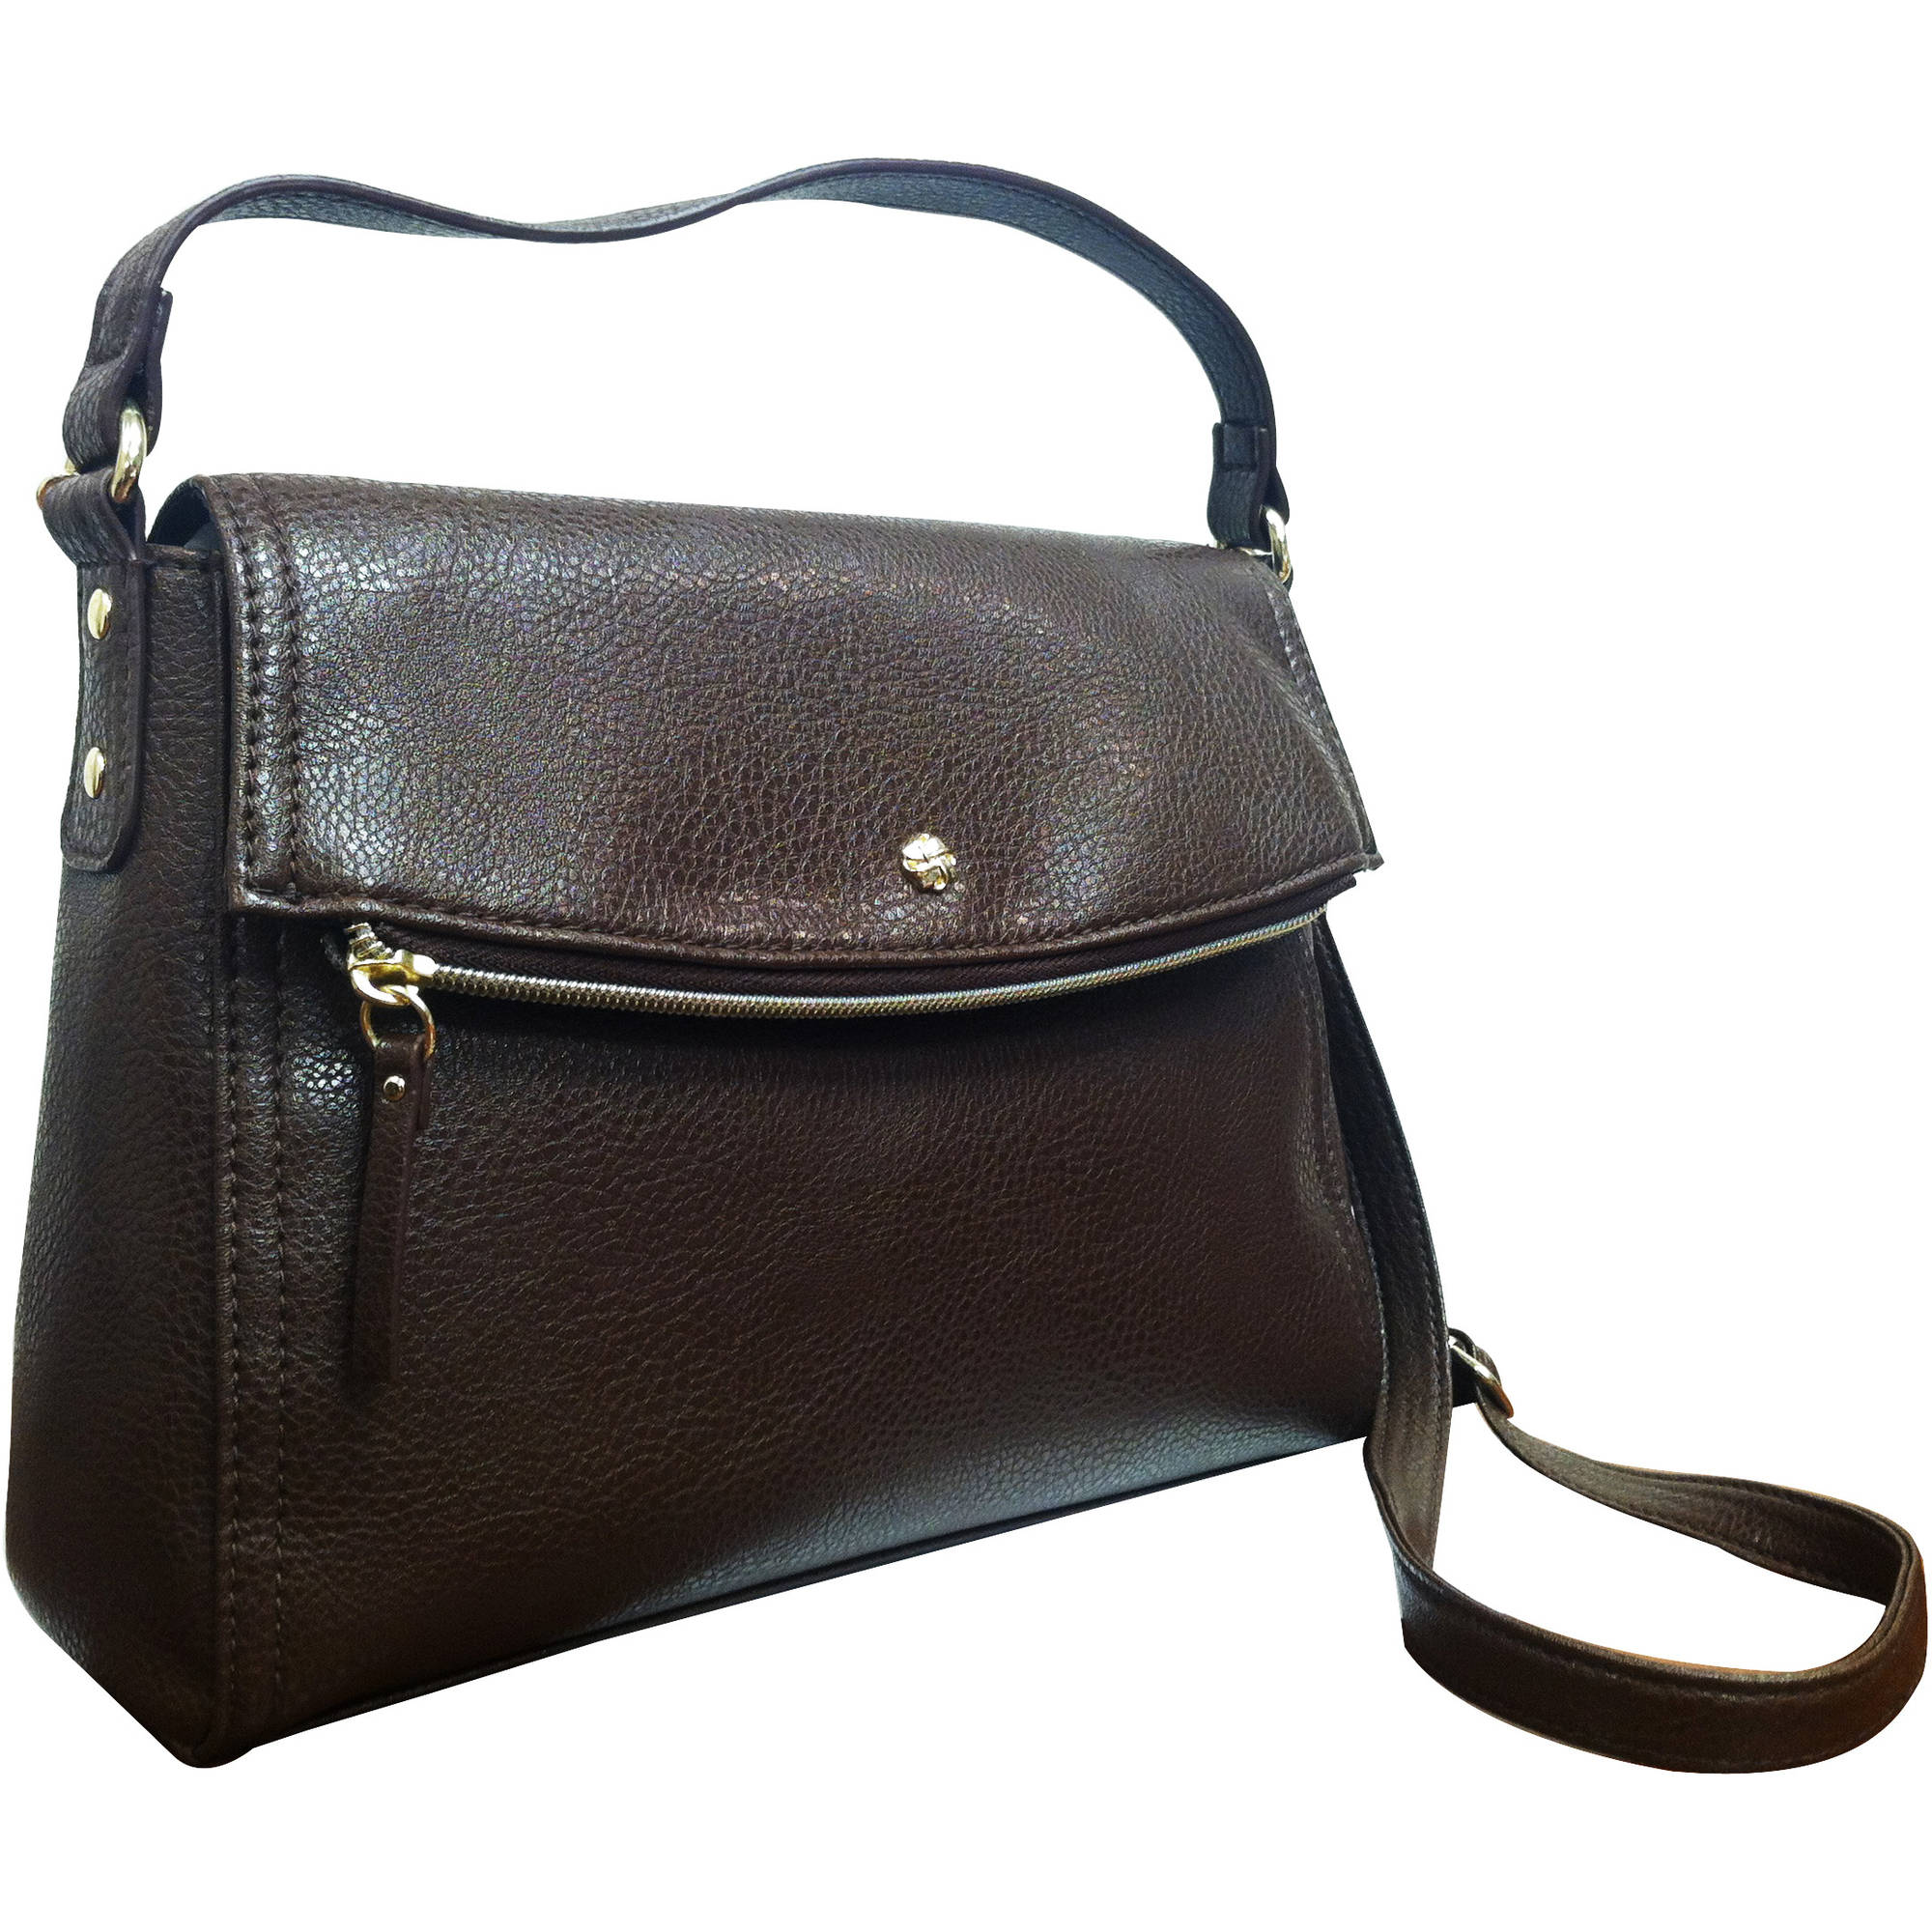 George Women's Crossbody Flap Handbag